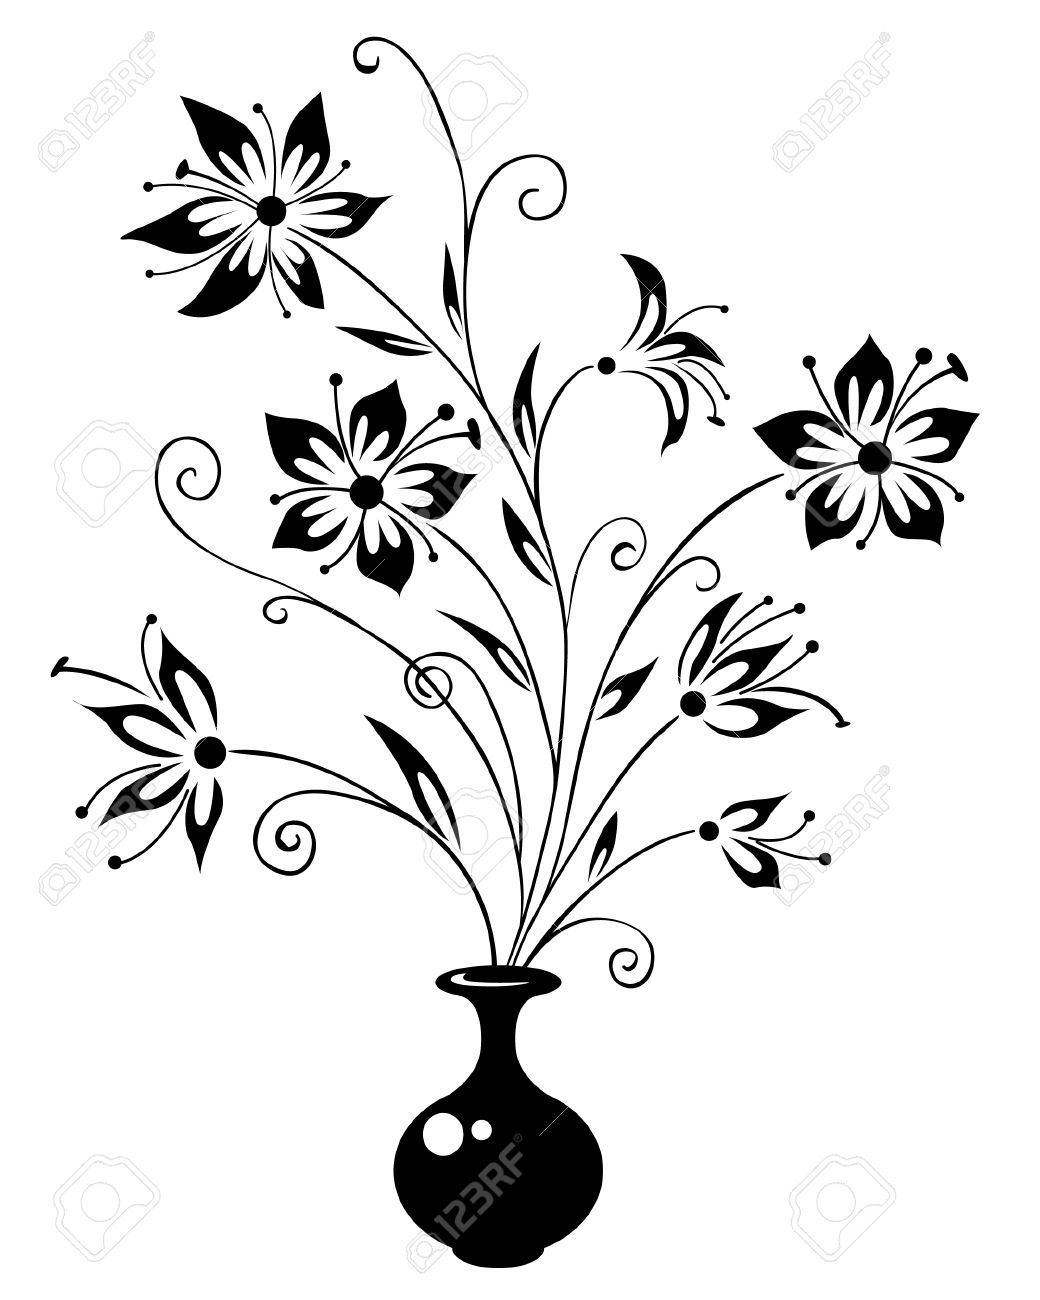 Bouquet flowers a vase drawing a vase stock vector illustration bouquet flowers a vase drawing a vase stock vector illustration ccuart Images